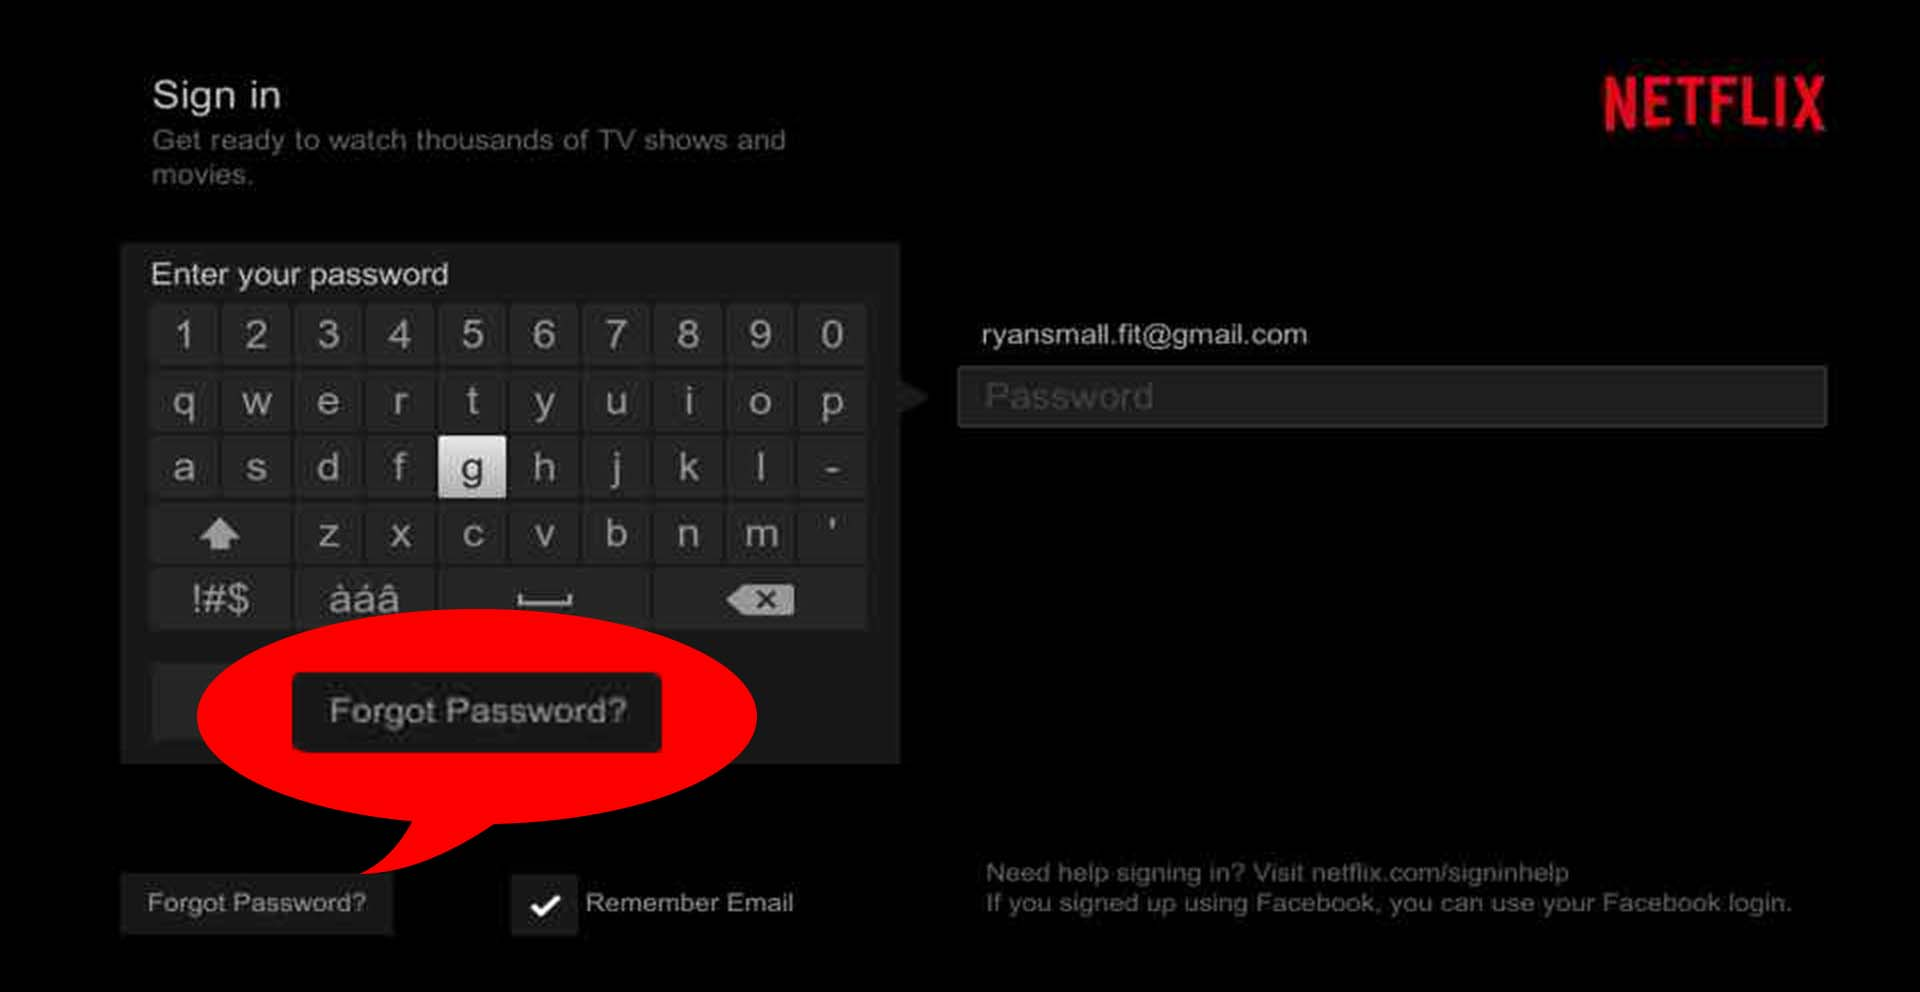 Click the Forgot Password button to start the process.